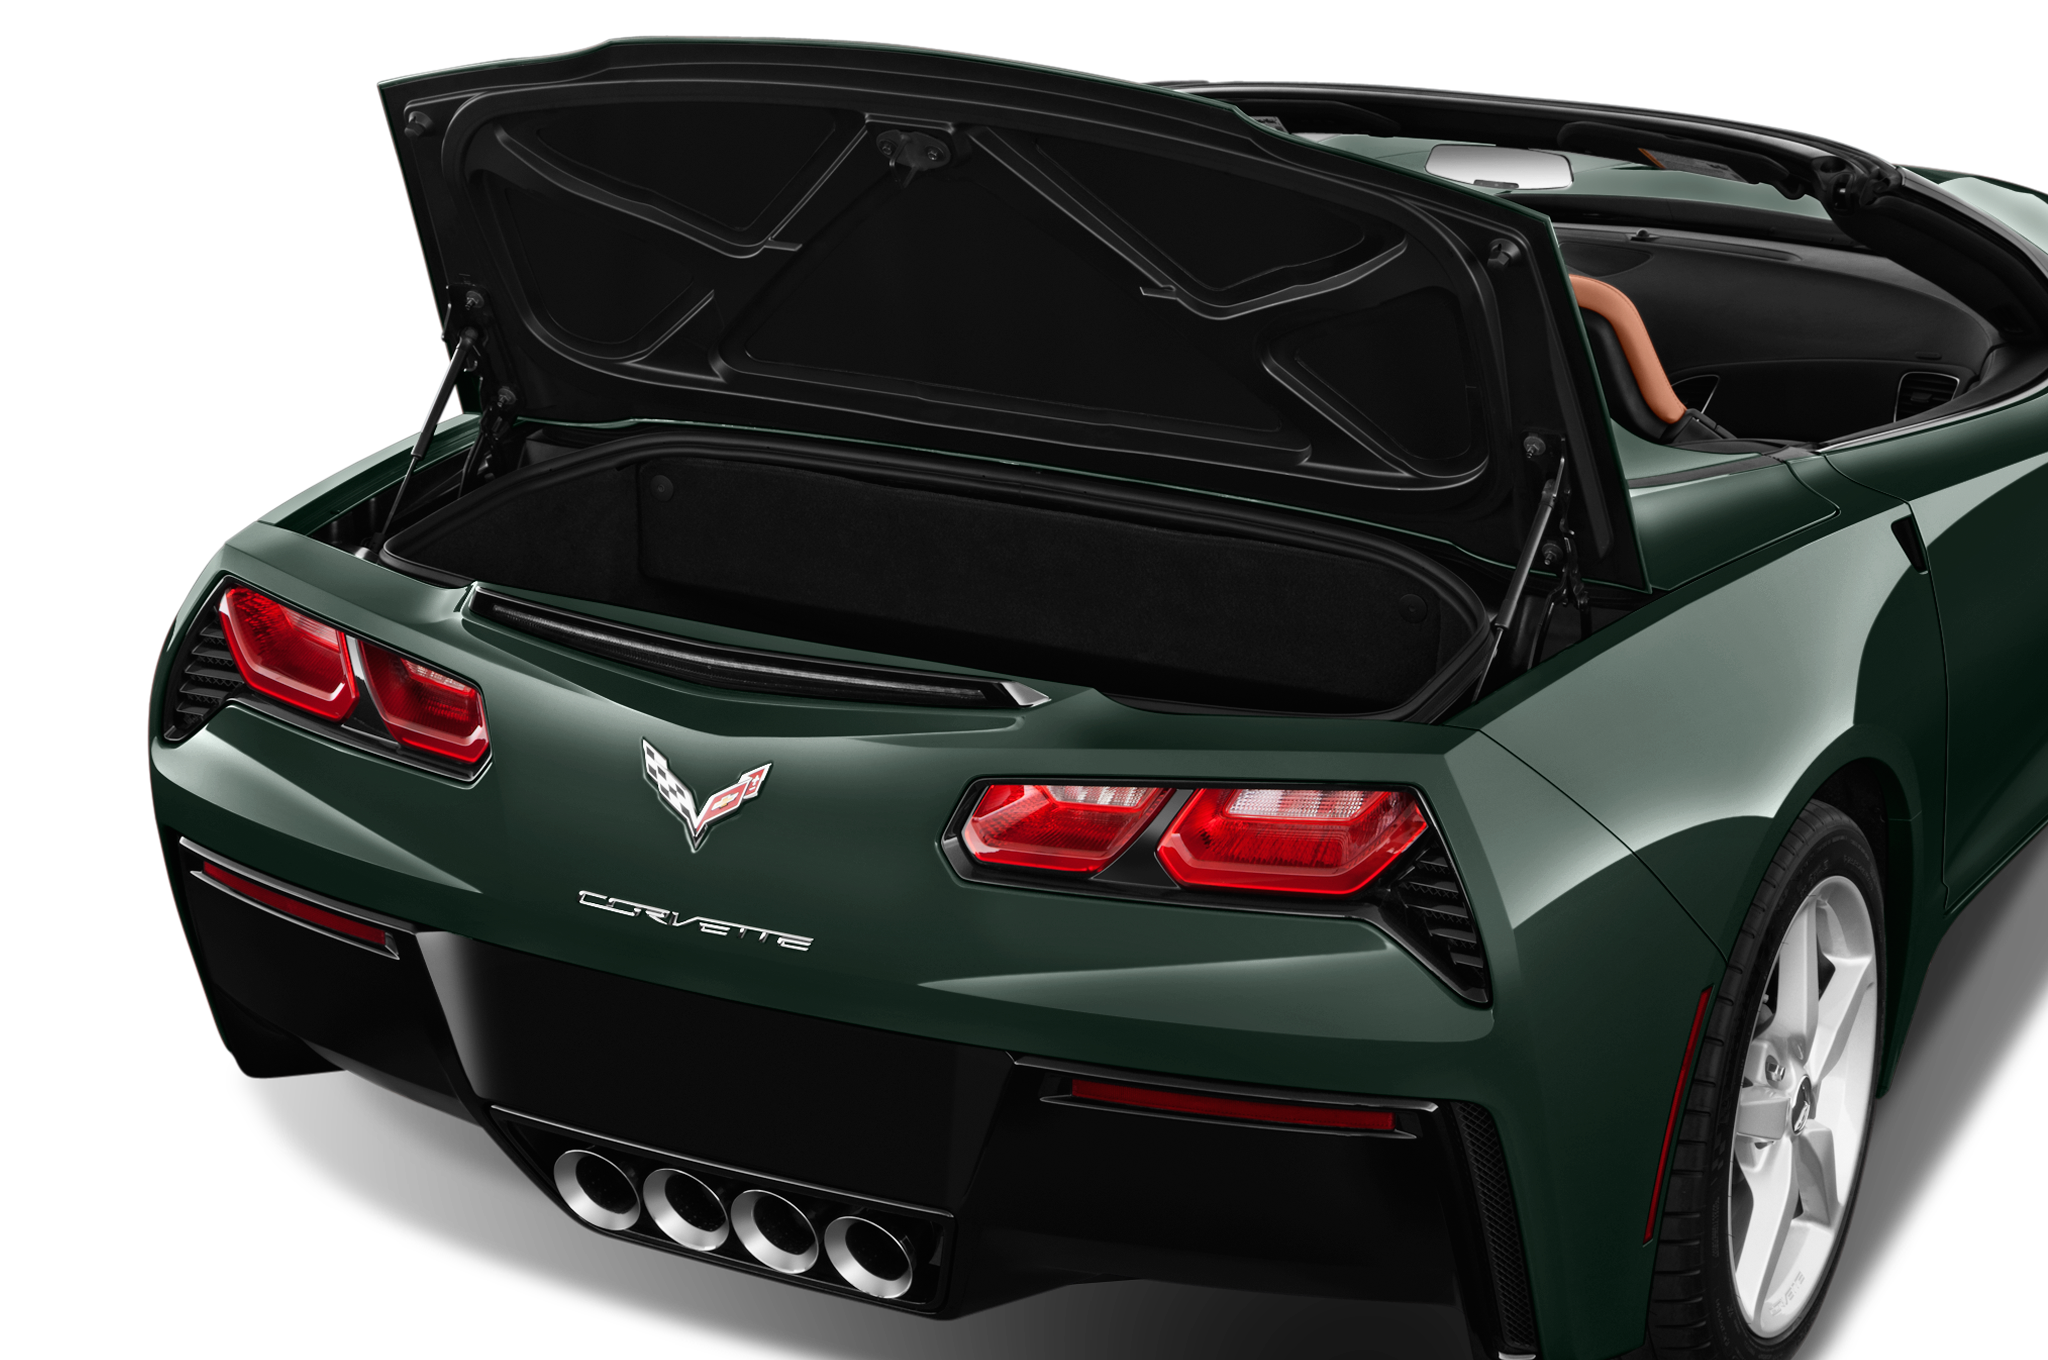 Jeff Gordons Chevrolet Corvette Z06 C7r Edition Up For Grabs Honda Cr V Thermostat Location Furthermore Chevy Ac System Diagram 52 97